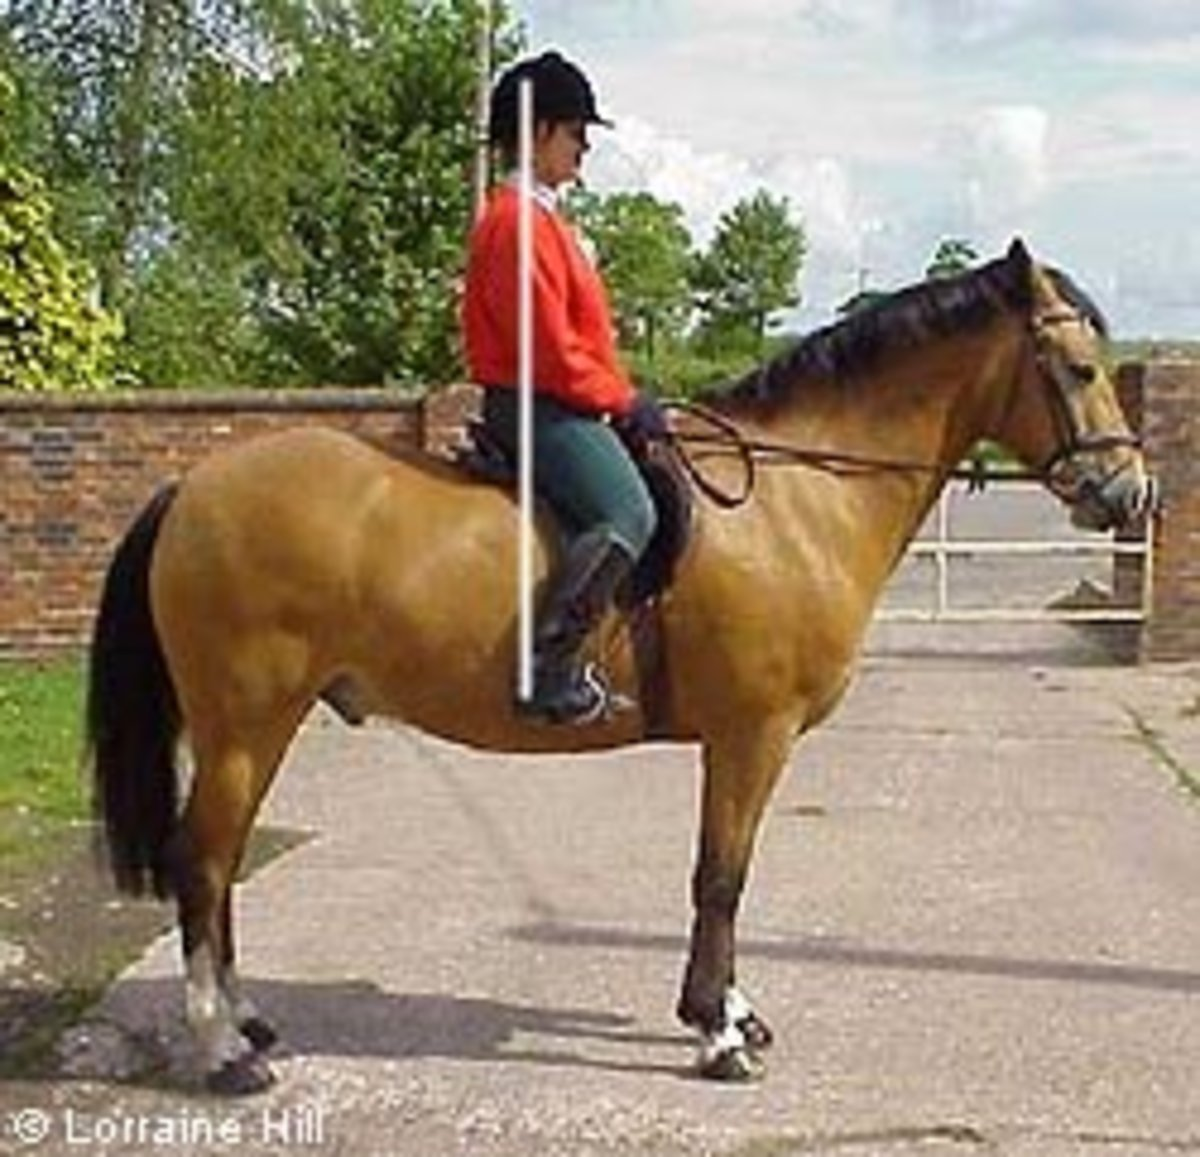 Horse riding position: The ankle, hips and ears are in line